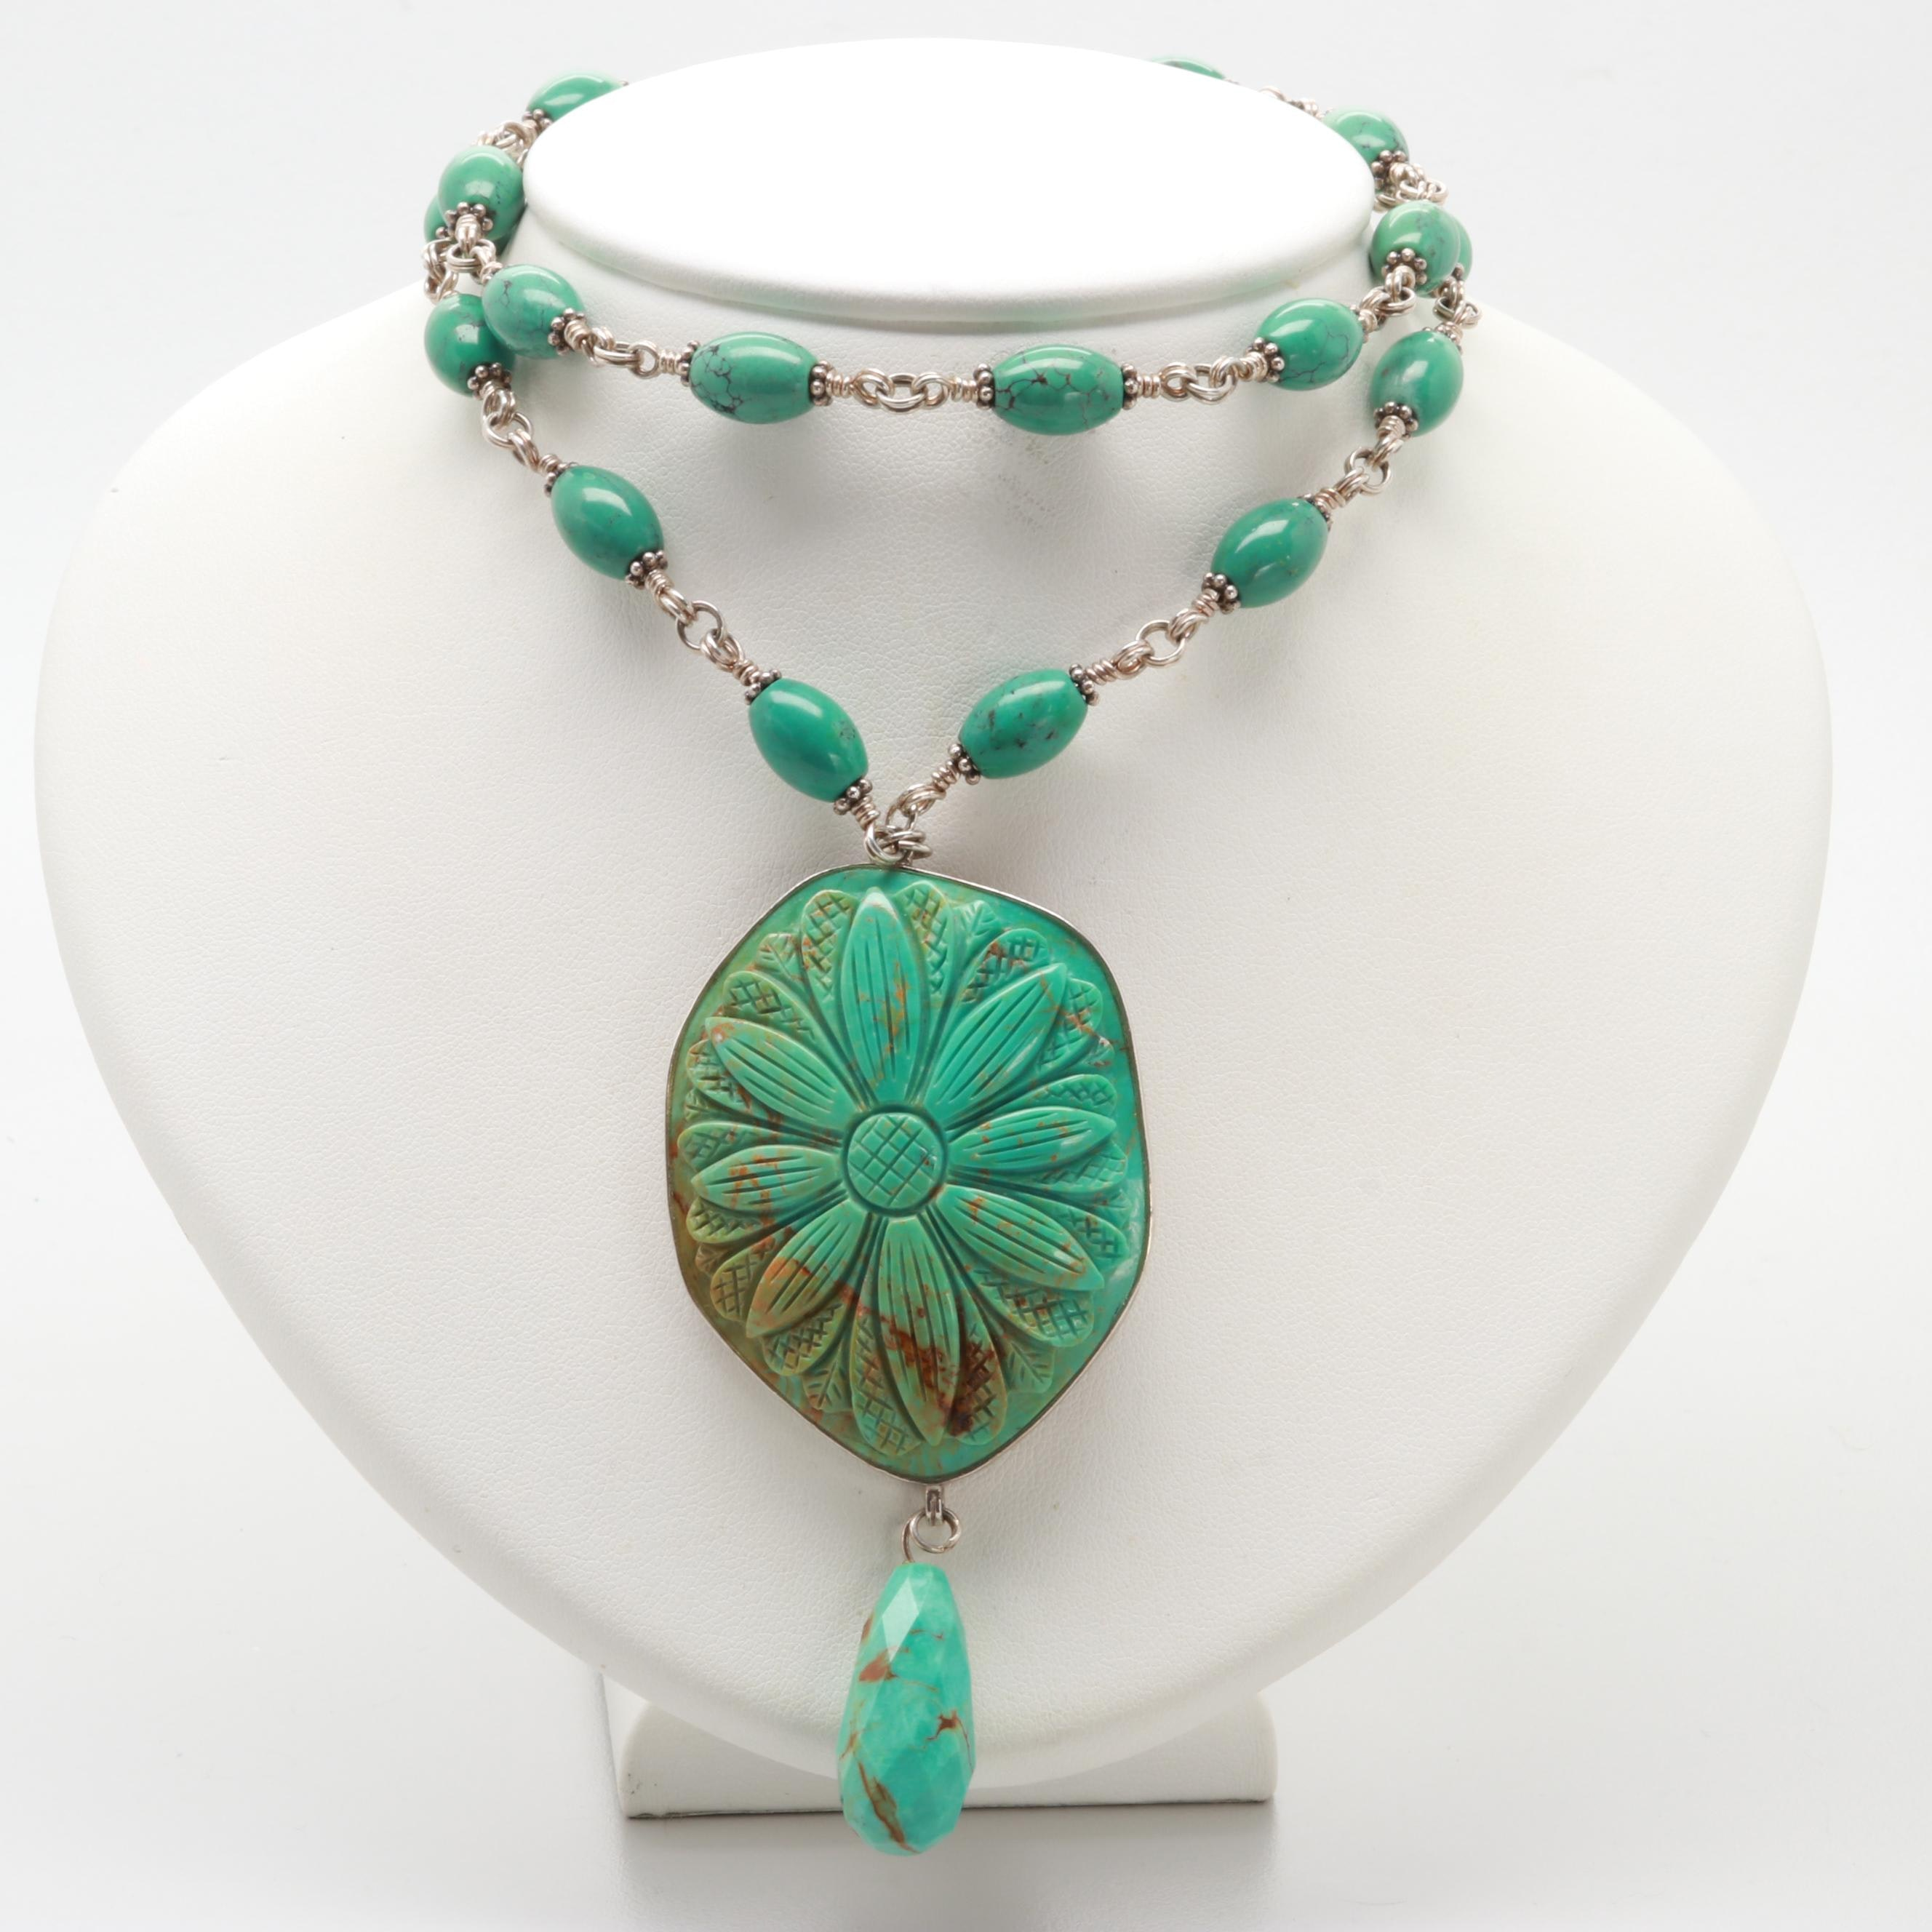 Stephen Dweck Stering Silver Double Strand Turquoise Necklace